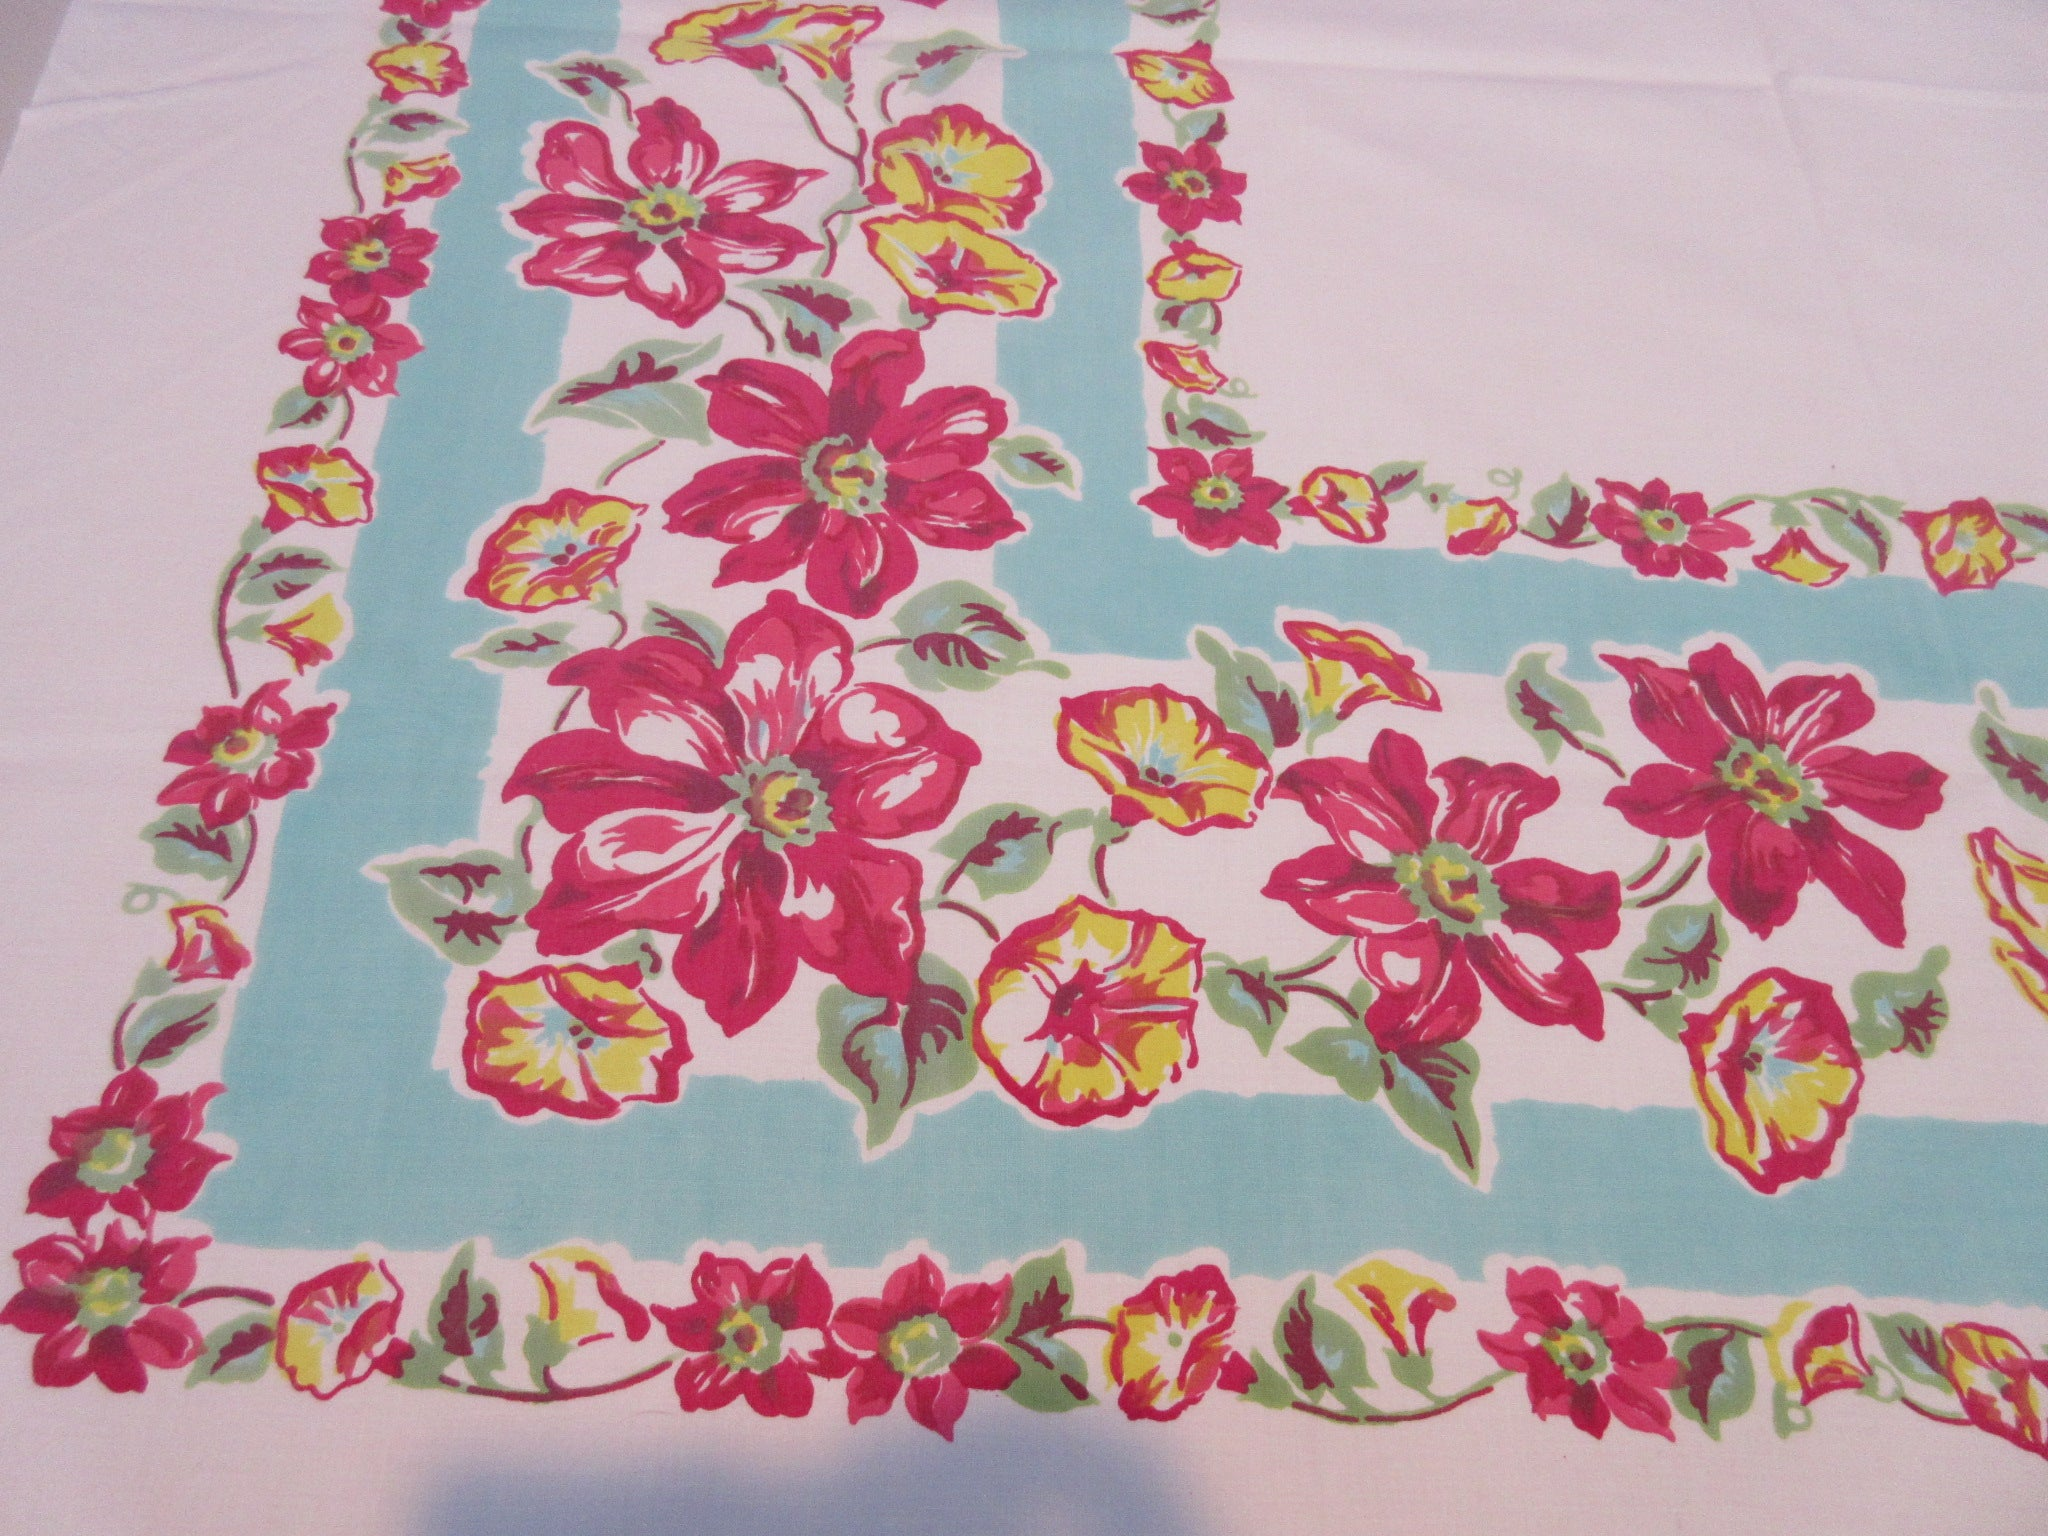 Pink Yellow Clematis Morning Glories on Aqua Topper Floral Vintage Printed Tablecloth (45 X 41)